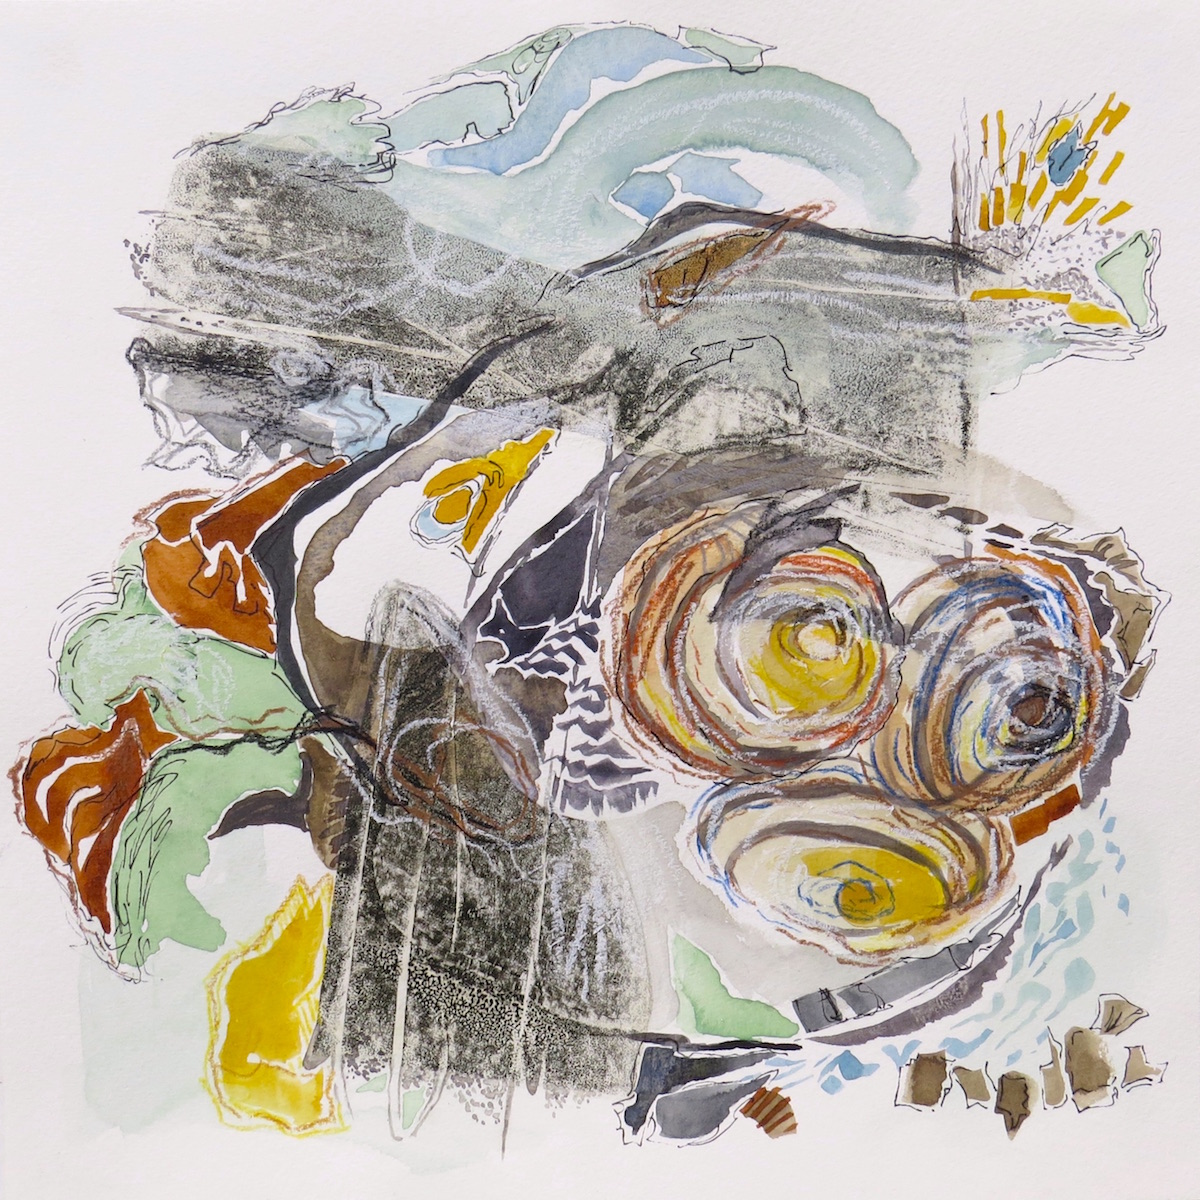 tidal bore, gouache, ink, coloured pencil, collage by Canadian contemporary artist barbra edwards